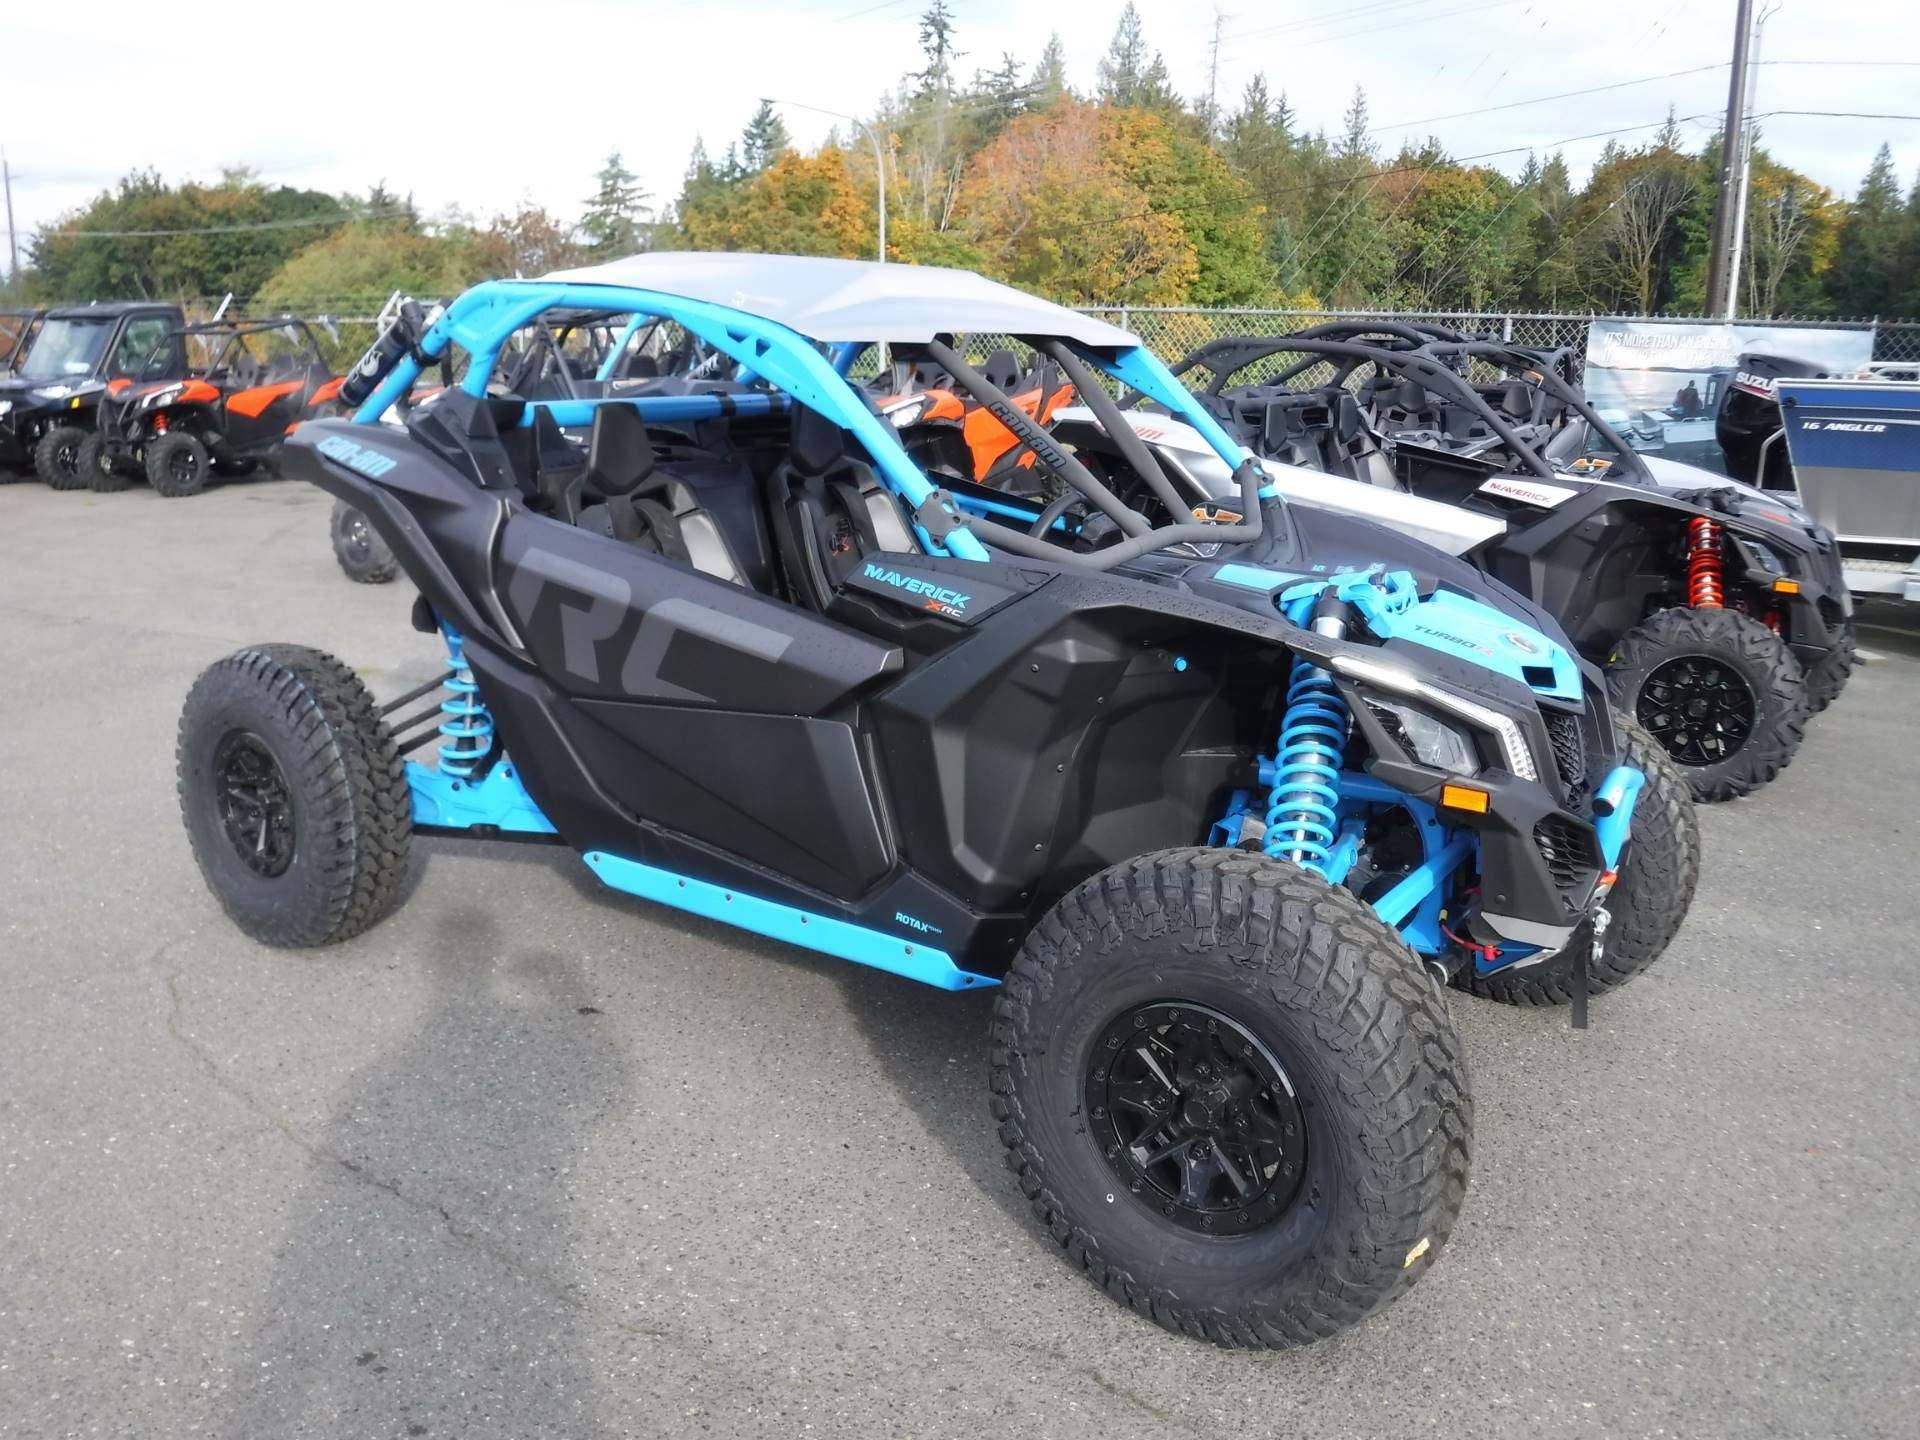 2019 Can-Am Maverick X3 X rc Turbo R in Port Angeles, Washington - Photo 3